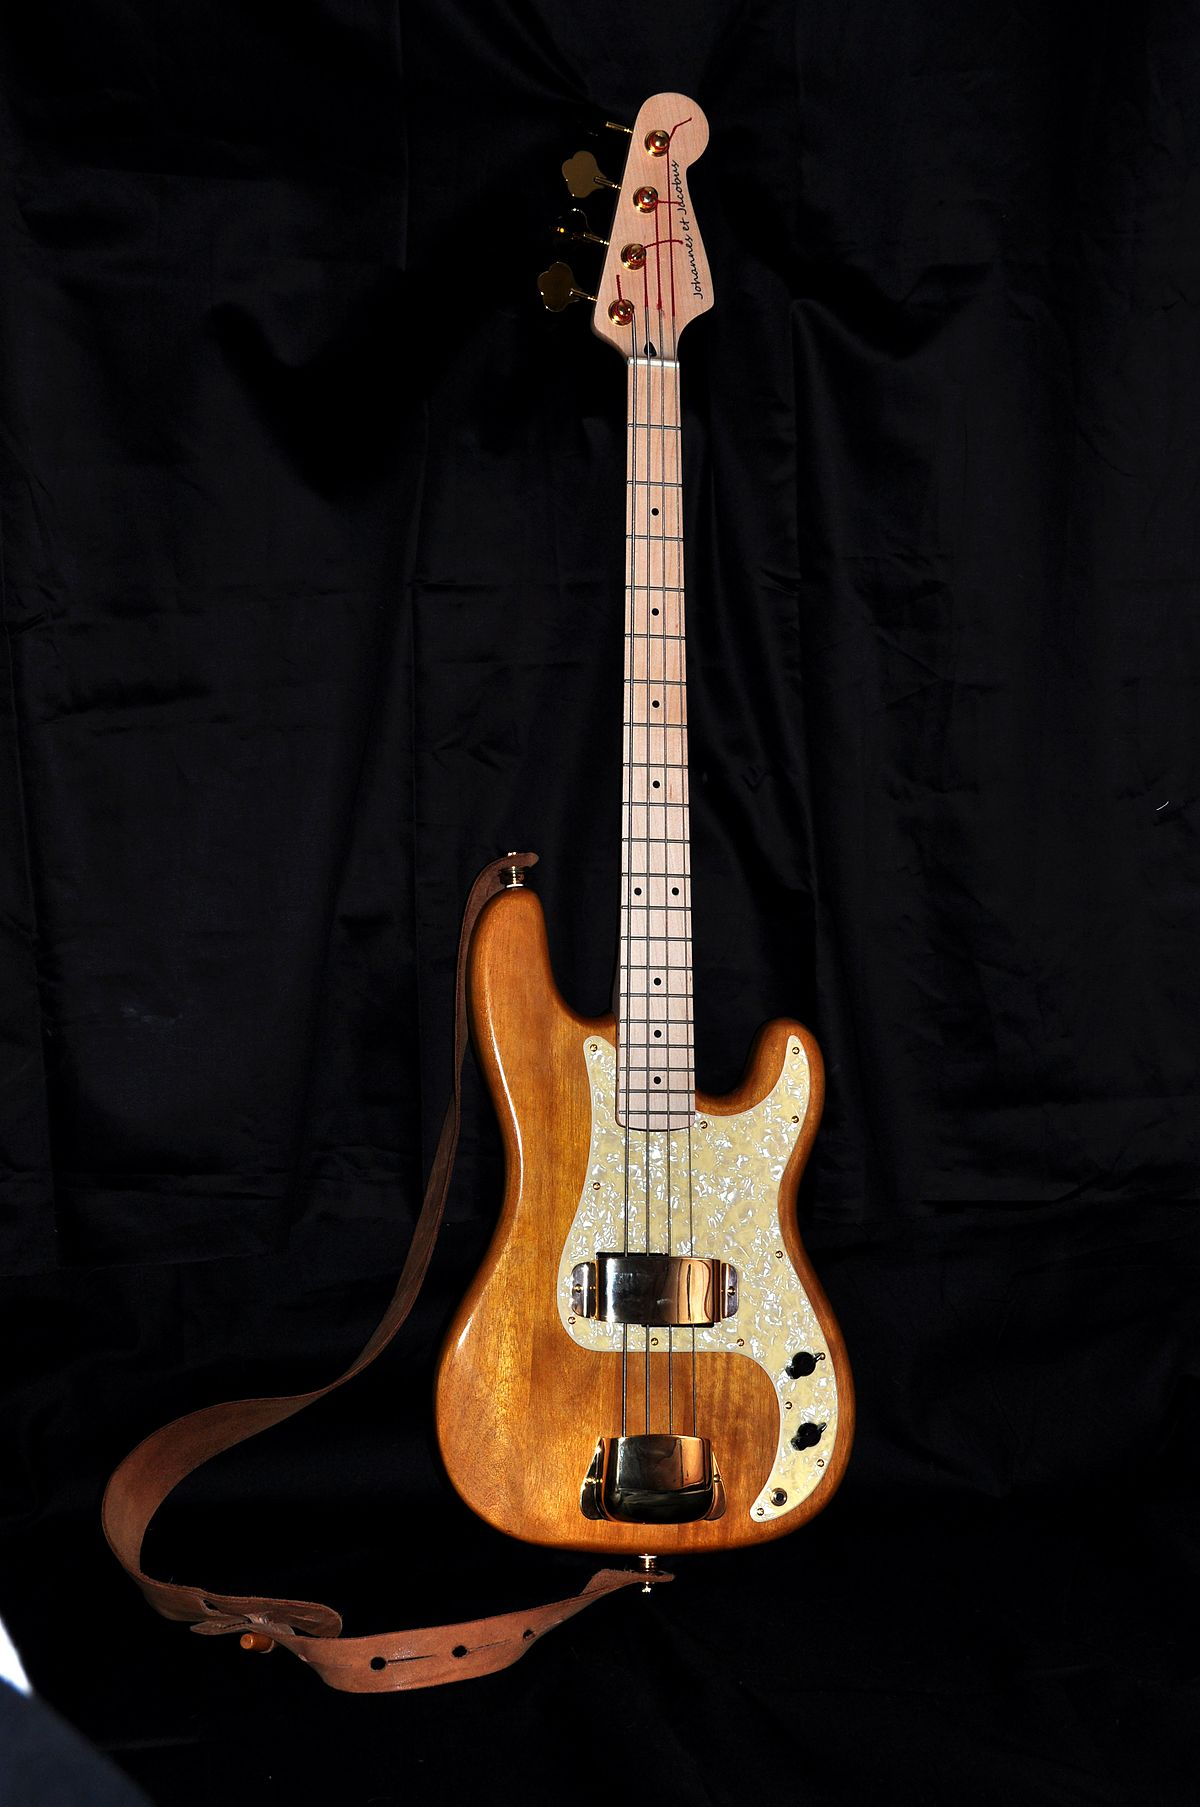 Bass guitar - Wikipedia